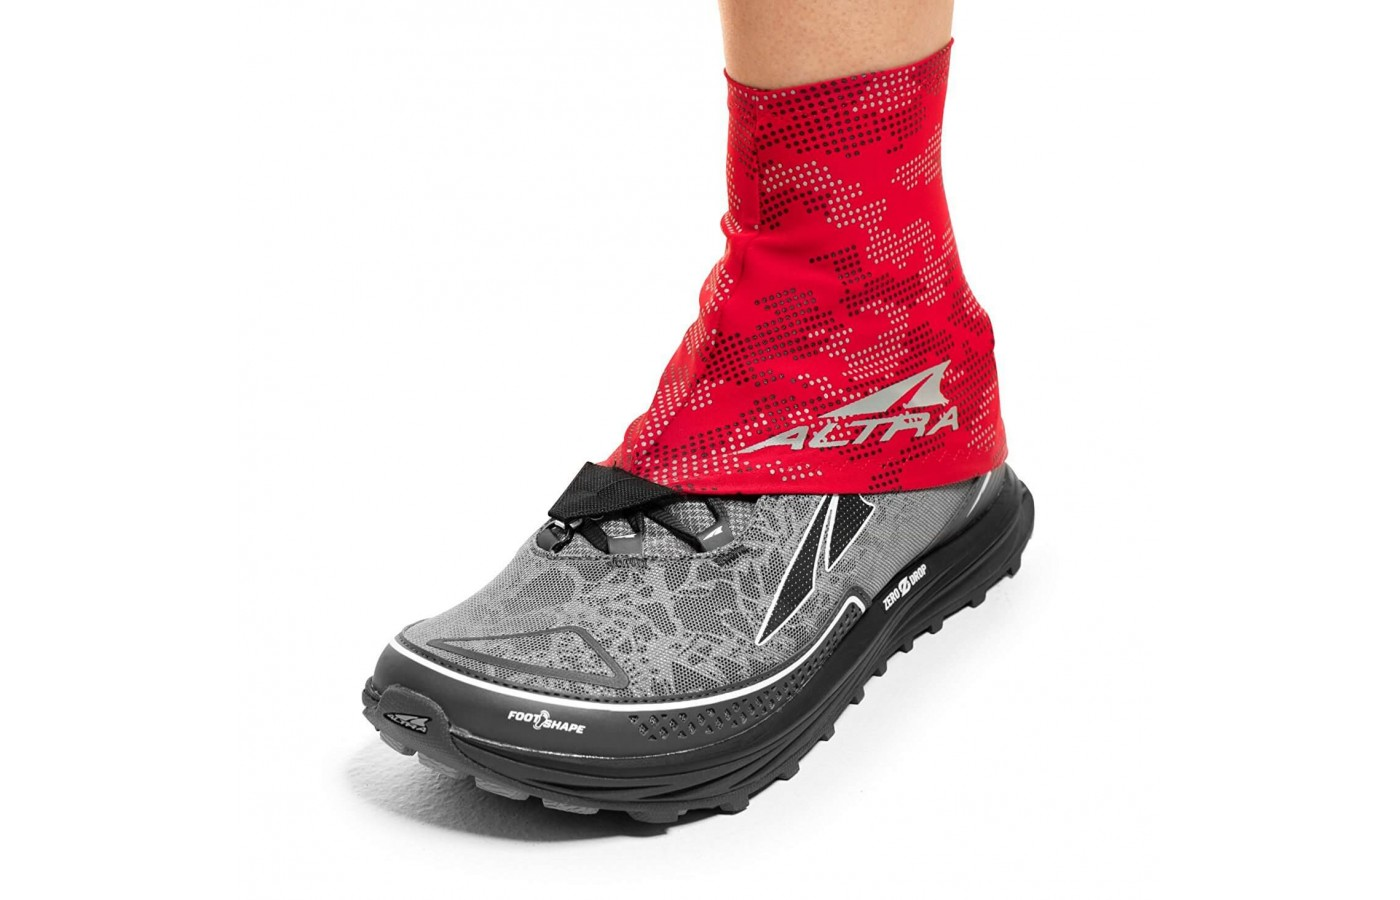 These gaiters come in a variety of colors.